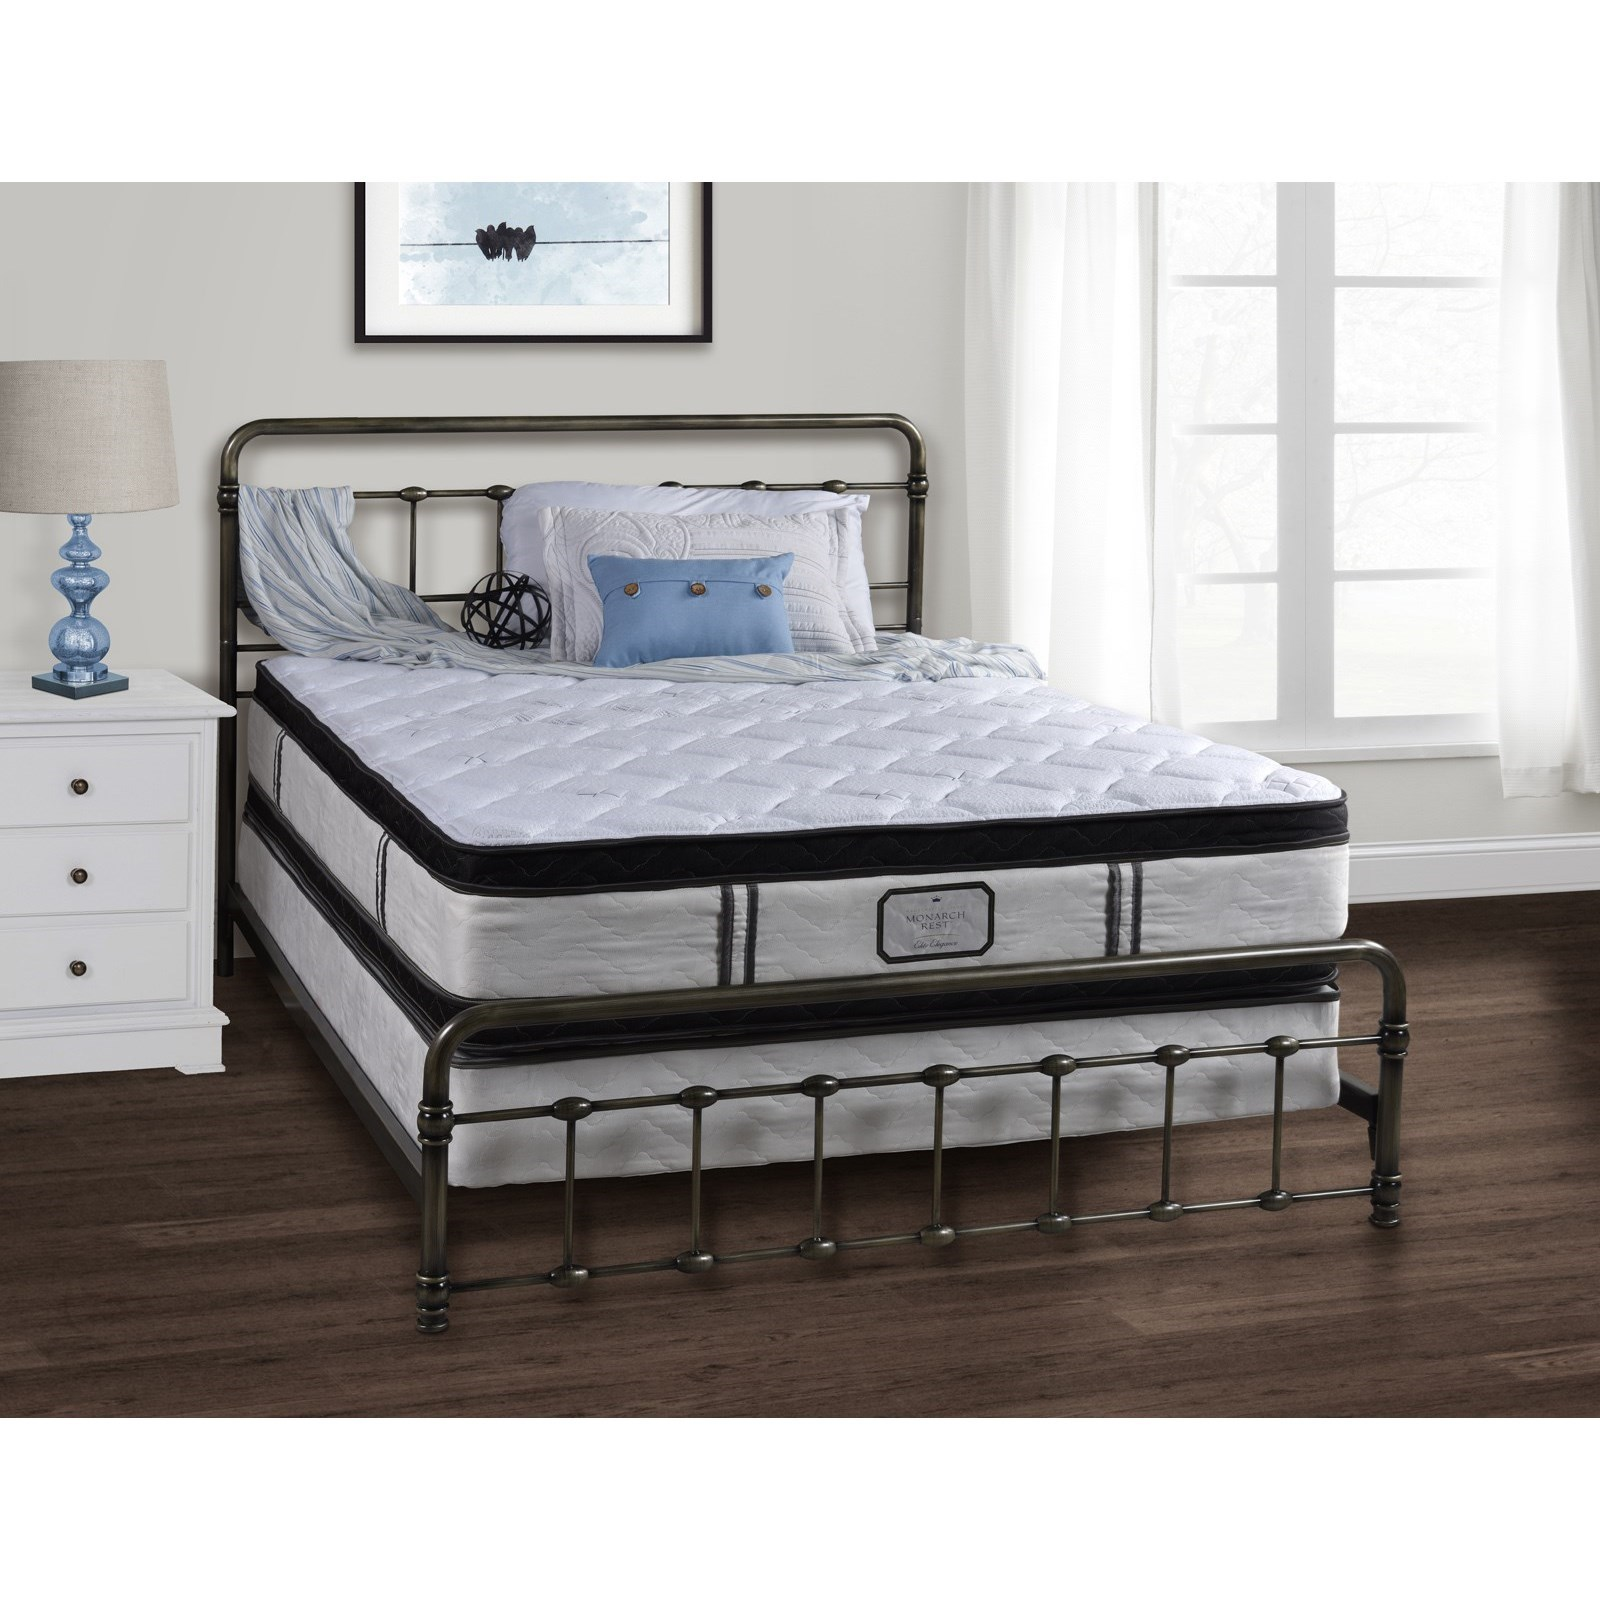 Monarch Elite Elegance PT King PT DS Innerspring Mattress Set by Amish Handcrafted at Saugerties Furniture Mart